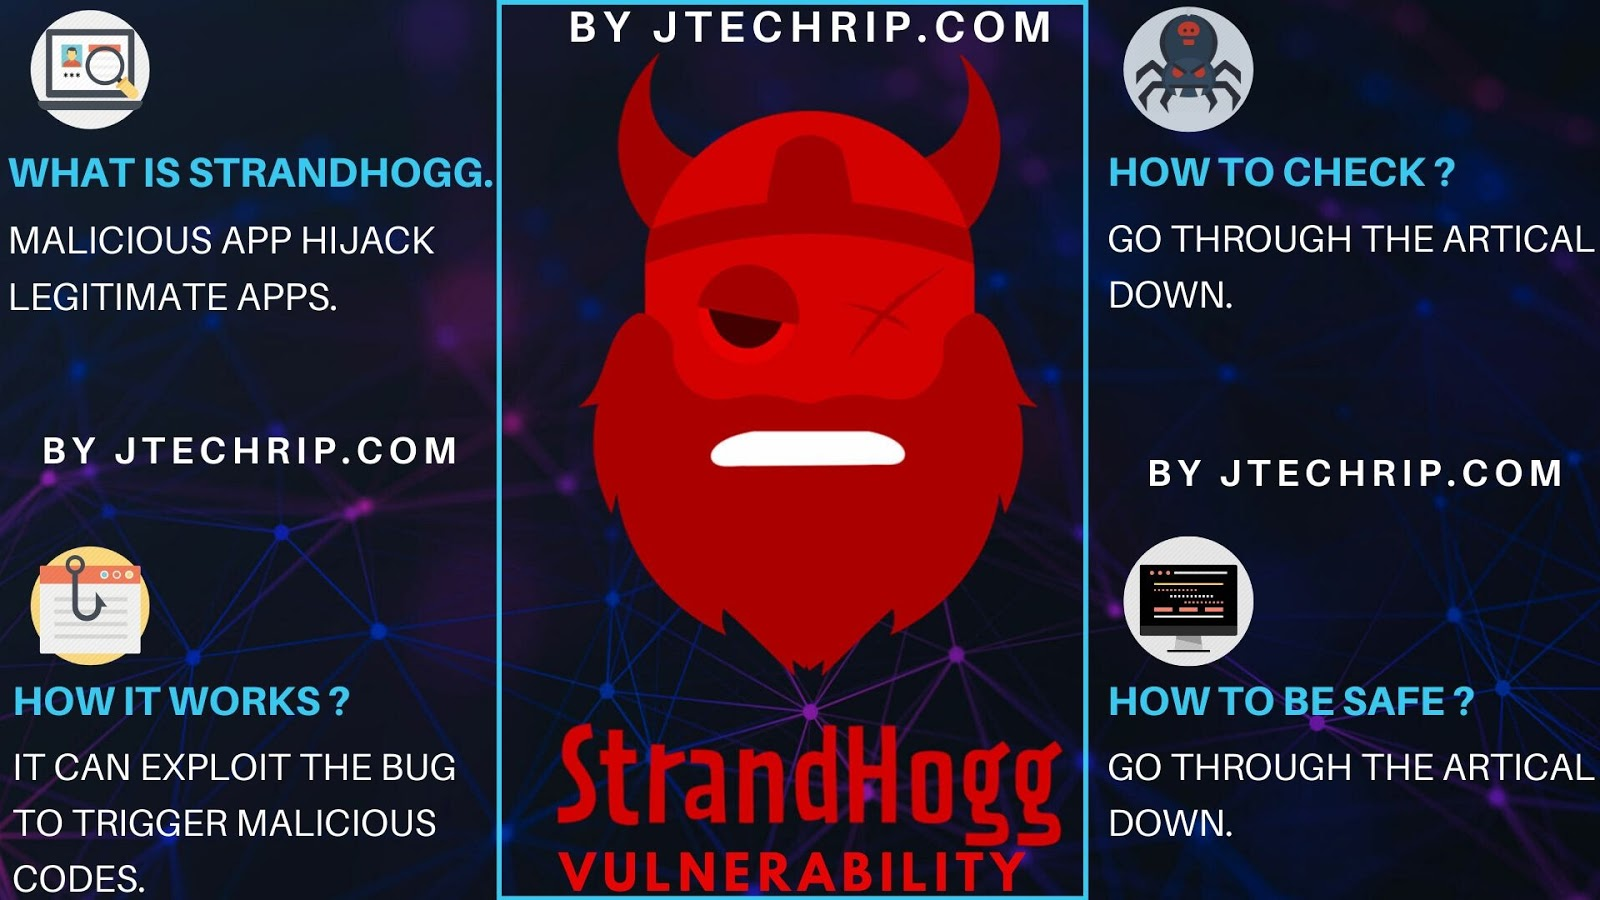 All About Strand Hogg Bug & Vulnerability.